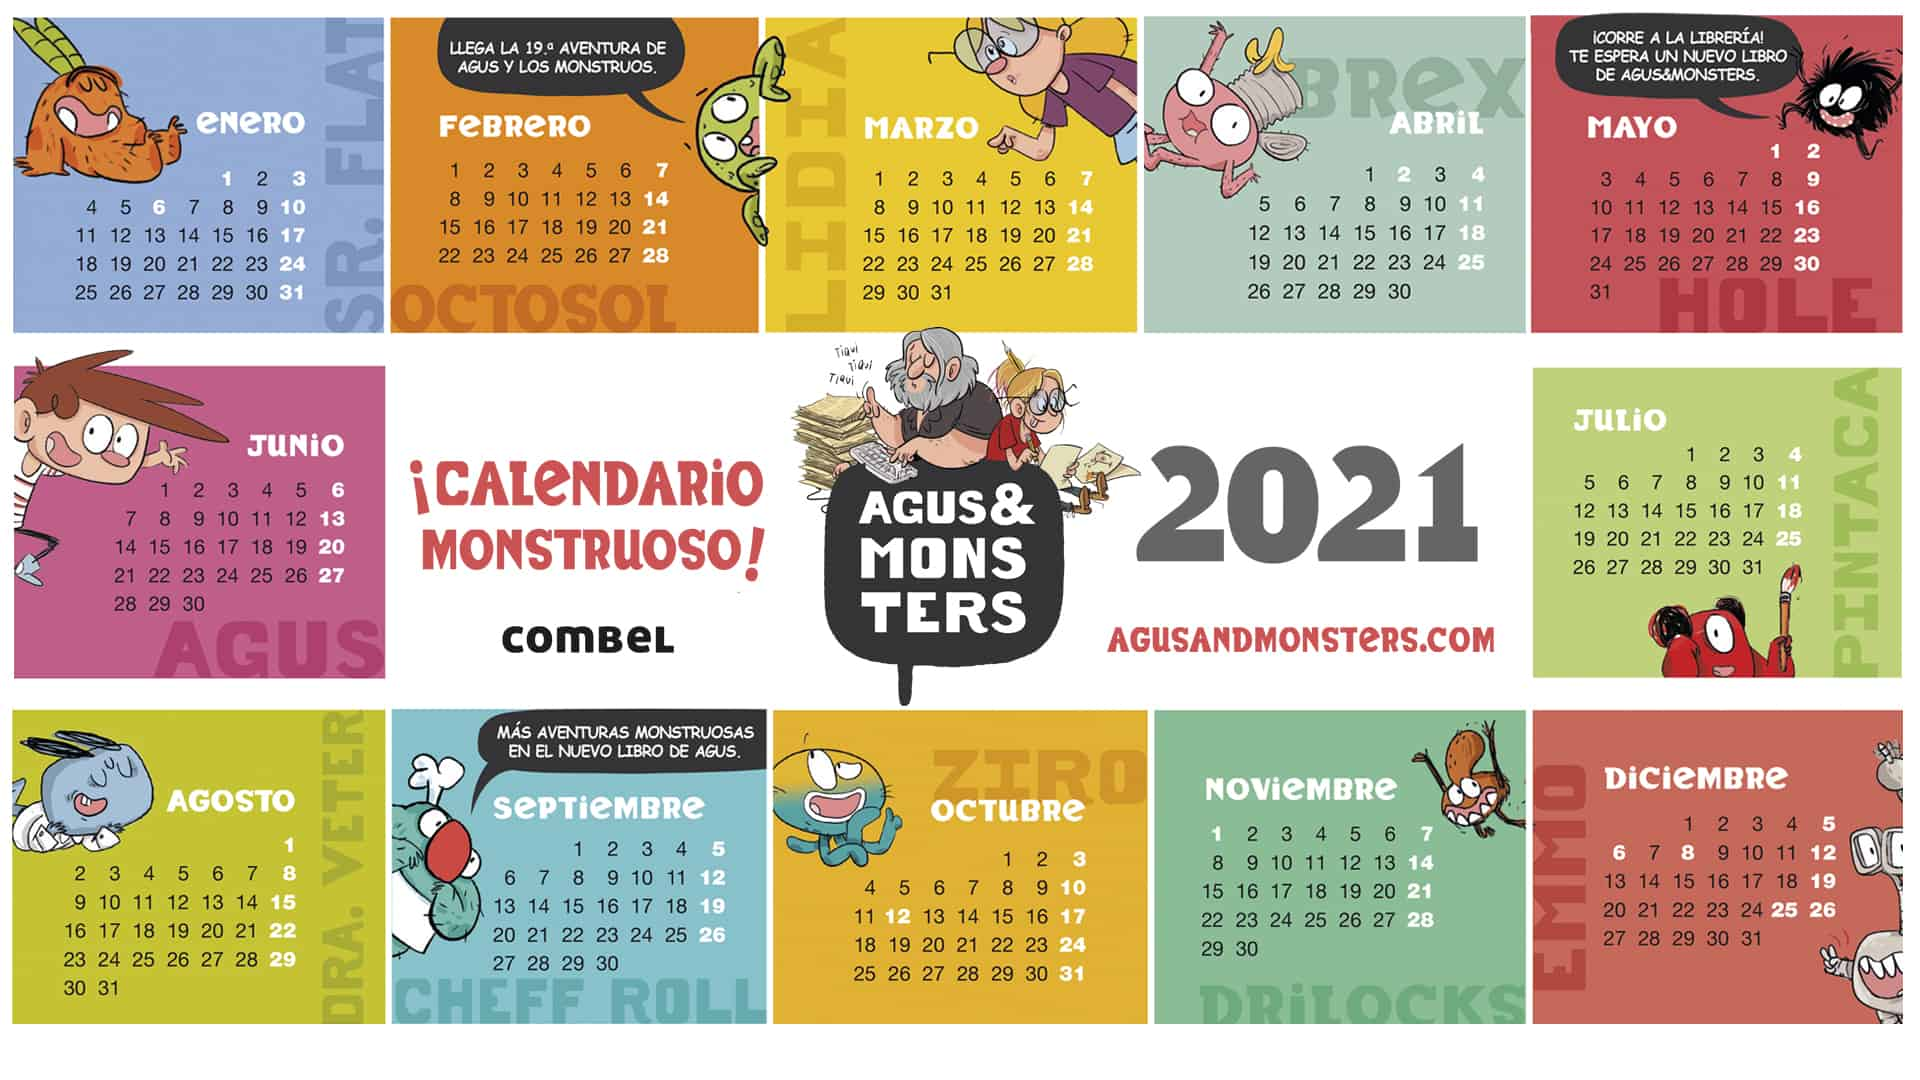 2021 monstrous calendar wallpaper   Agus and Monsters 1920x1080